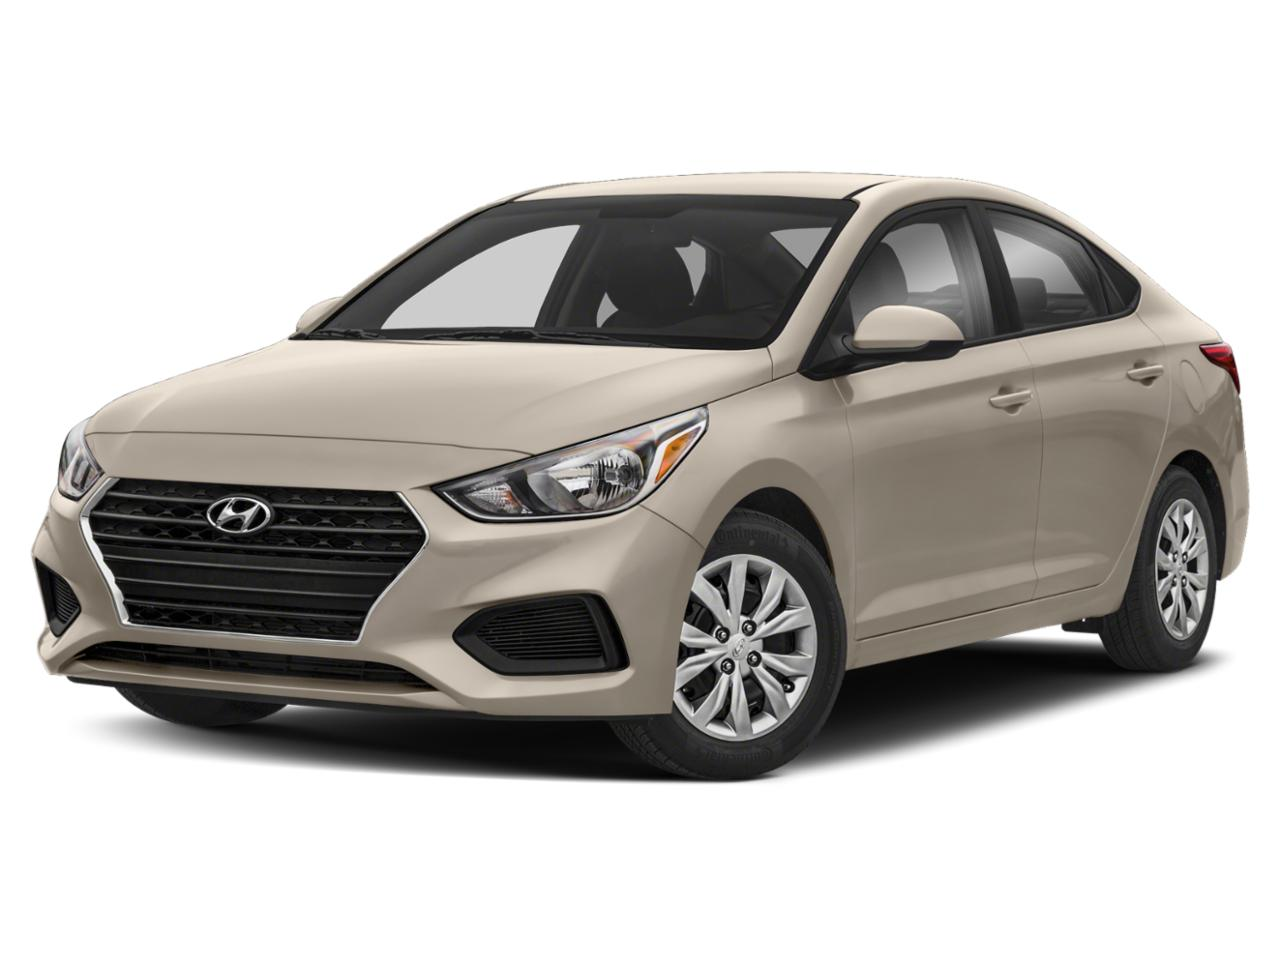 2020 Hyundai Accent Vehicle Photo in O'Fallon, IL 62269